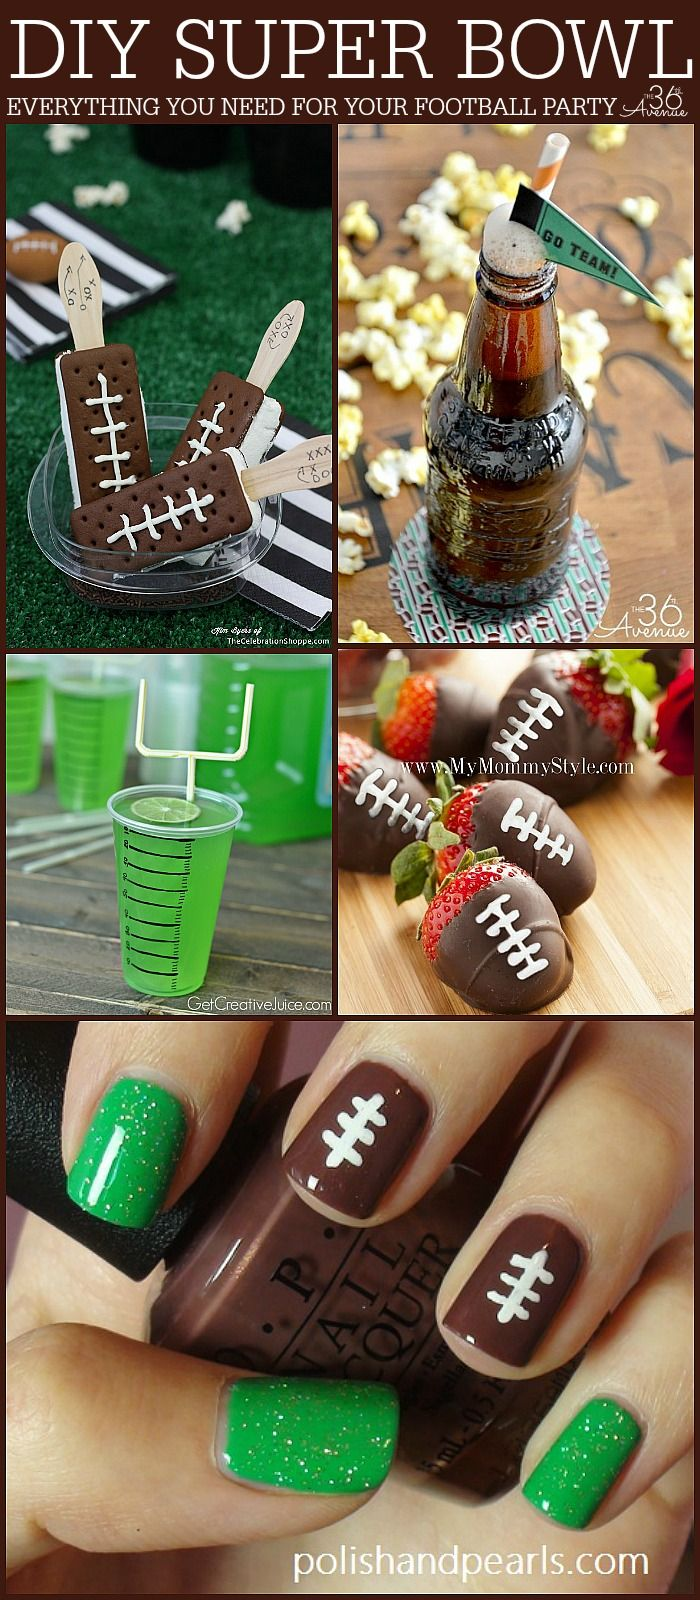 Super bowl party ideas super bowl party bowls and for Super bowl party items